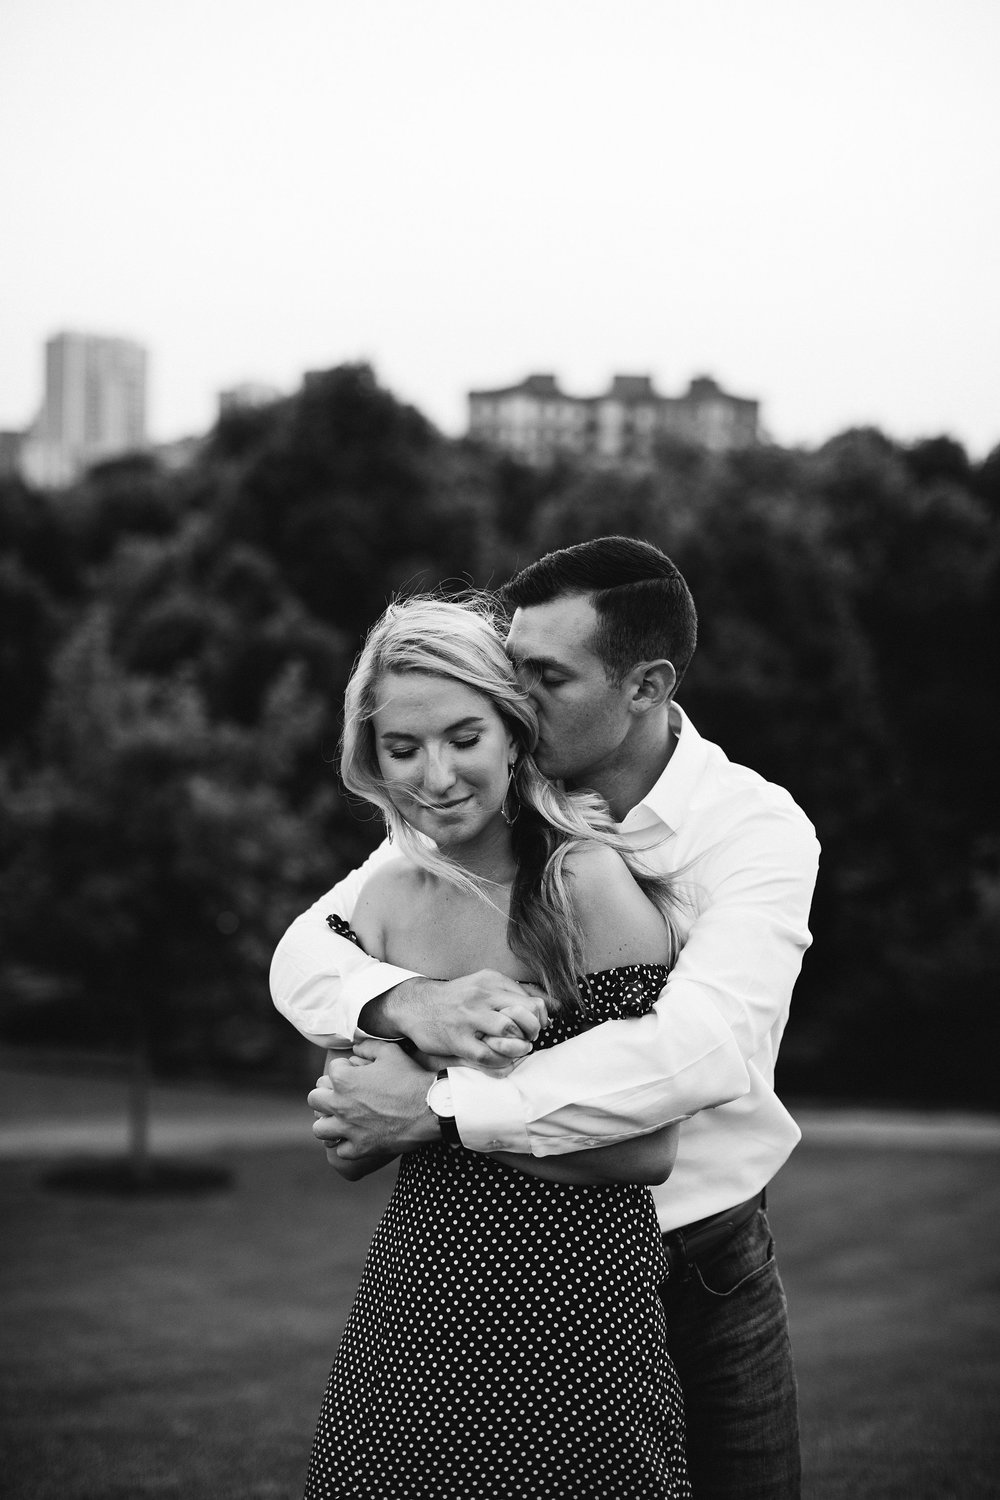 Nelson Museum and Crossroads Engagement Session_Loose Mansion Winter Wedding_Kindling Wedding Photography_120.JPG